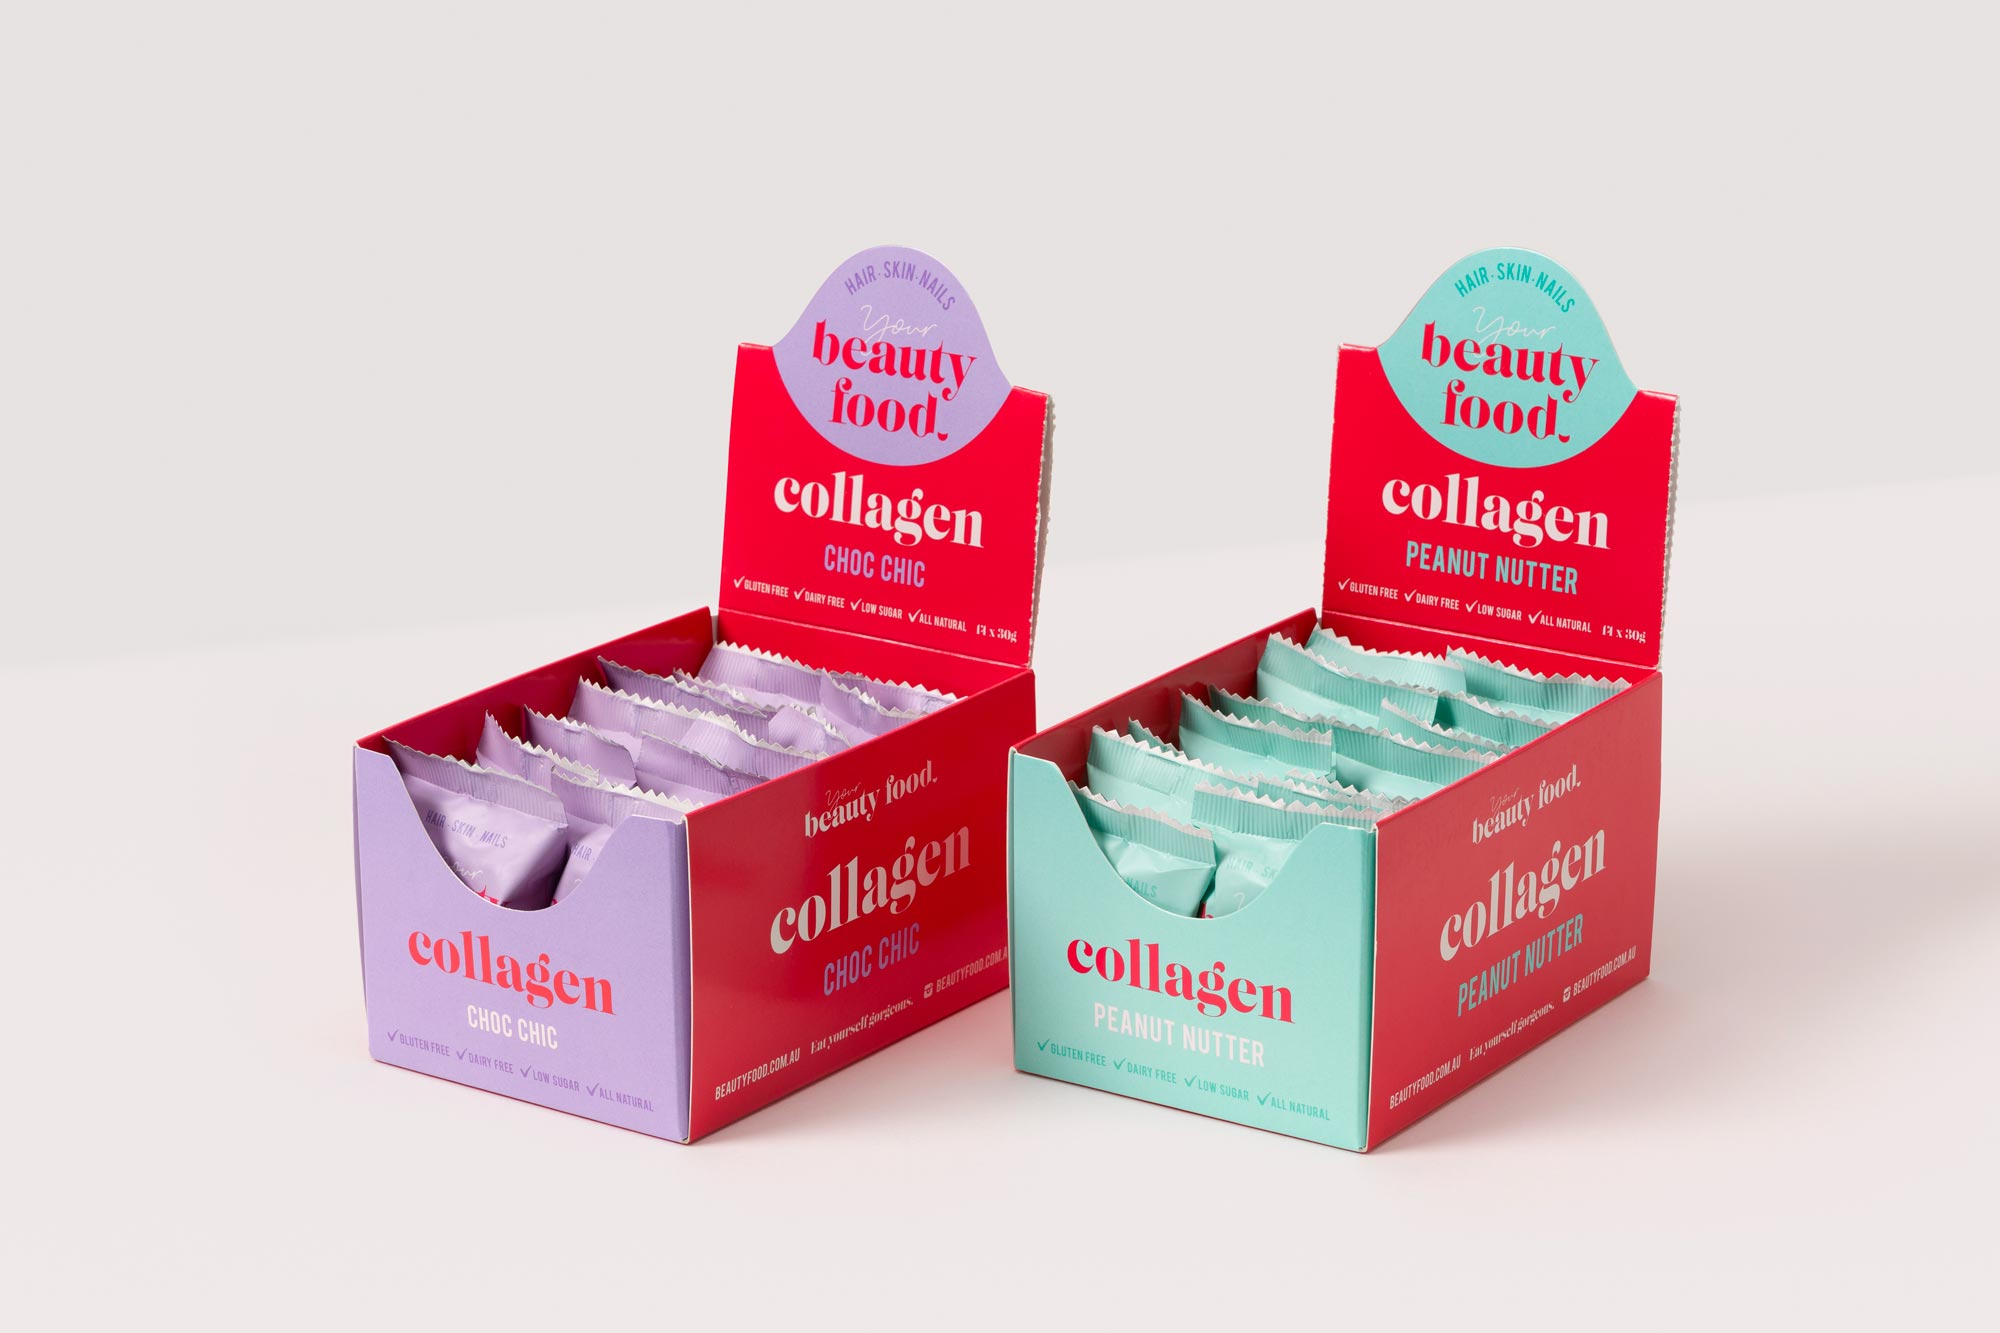 Two POS (point of sale) boxes of Beauty Food collagen cookies sit side-by-side.